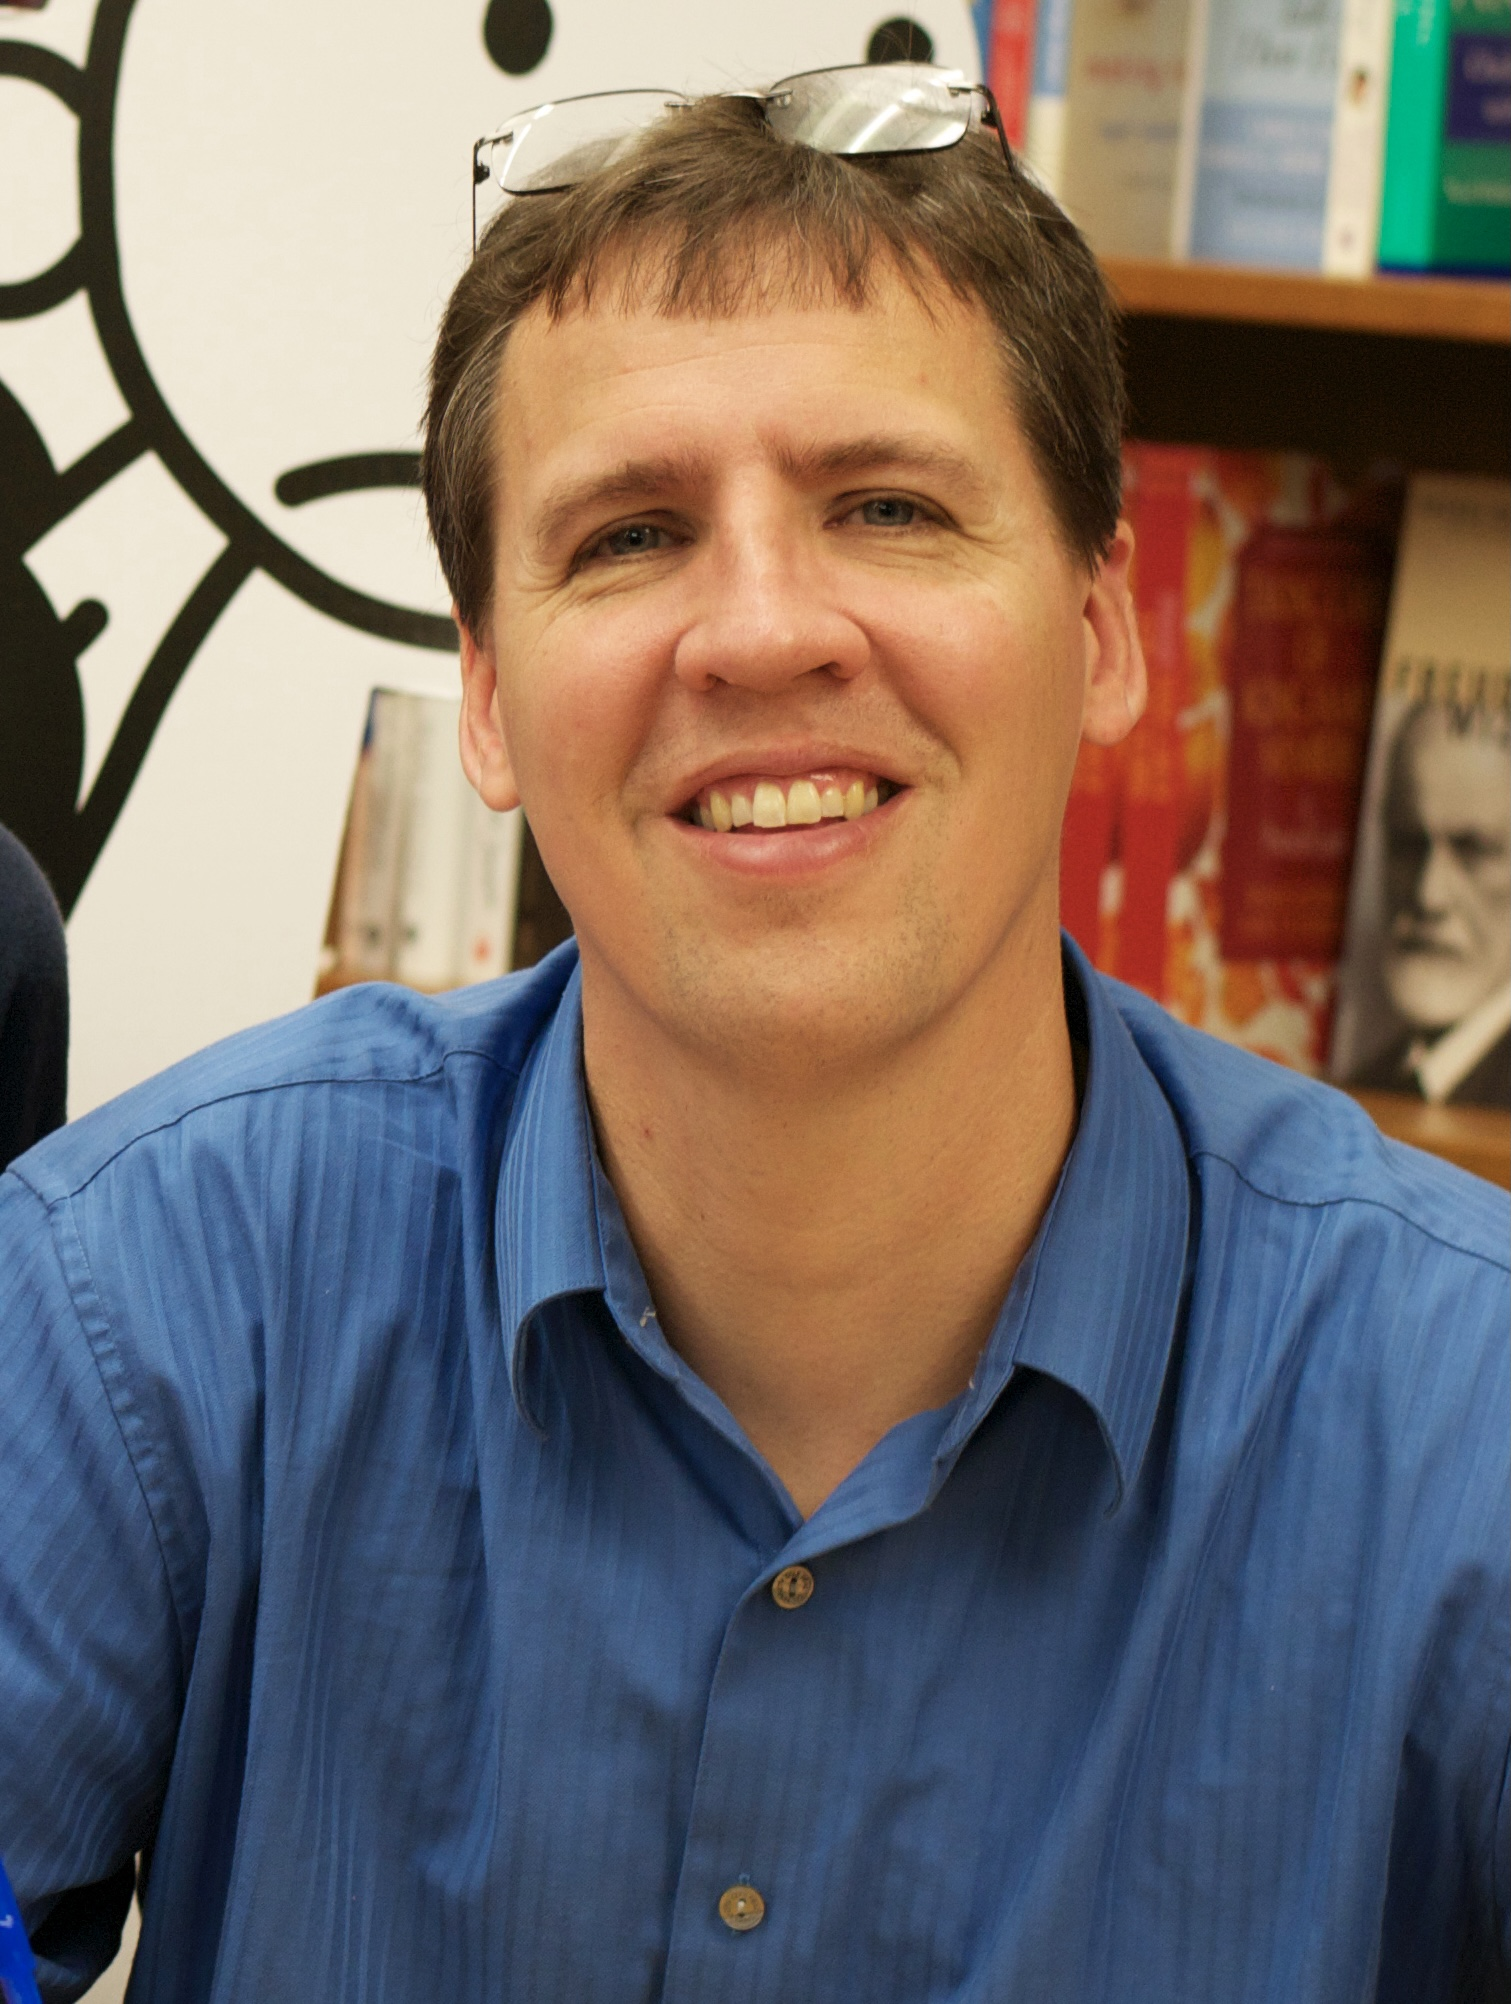 Tiedosto:Jeff Kinney Book Signing, November 2011 (1).jpg